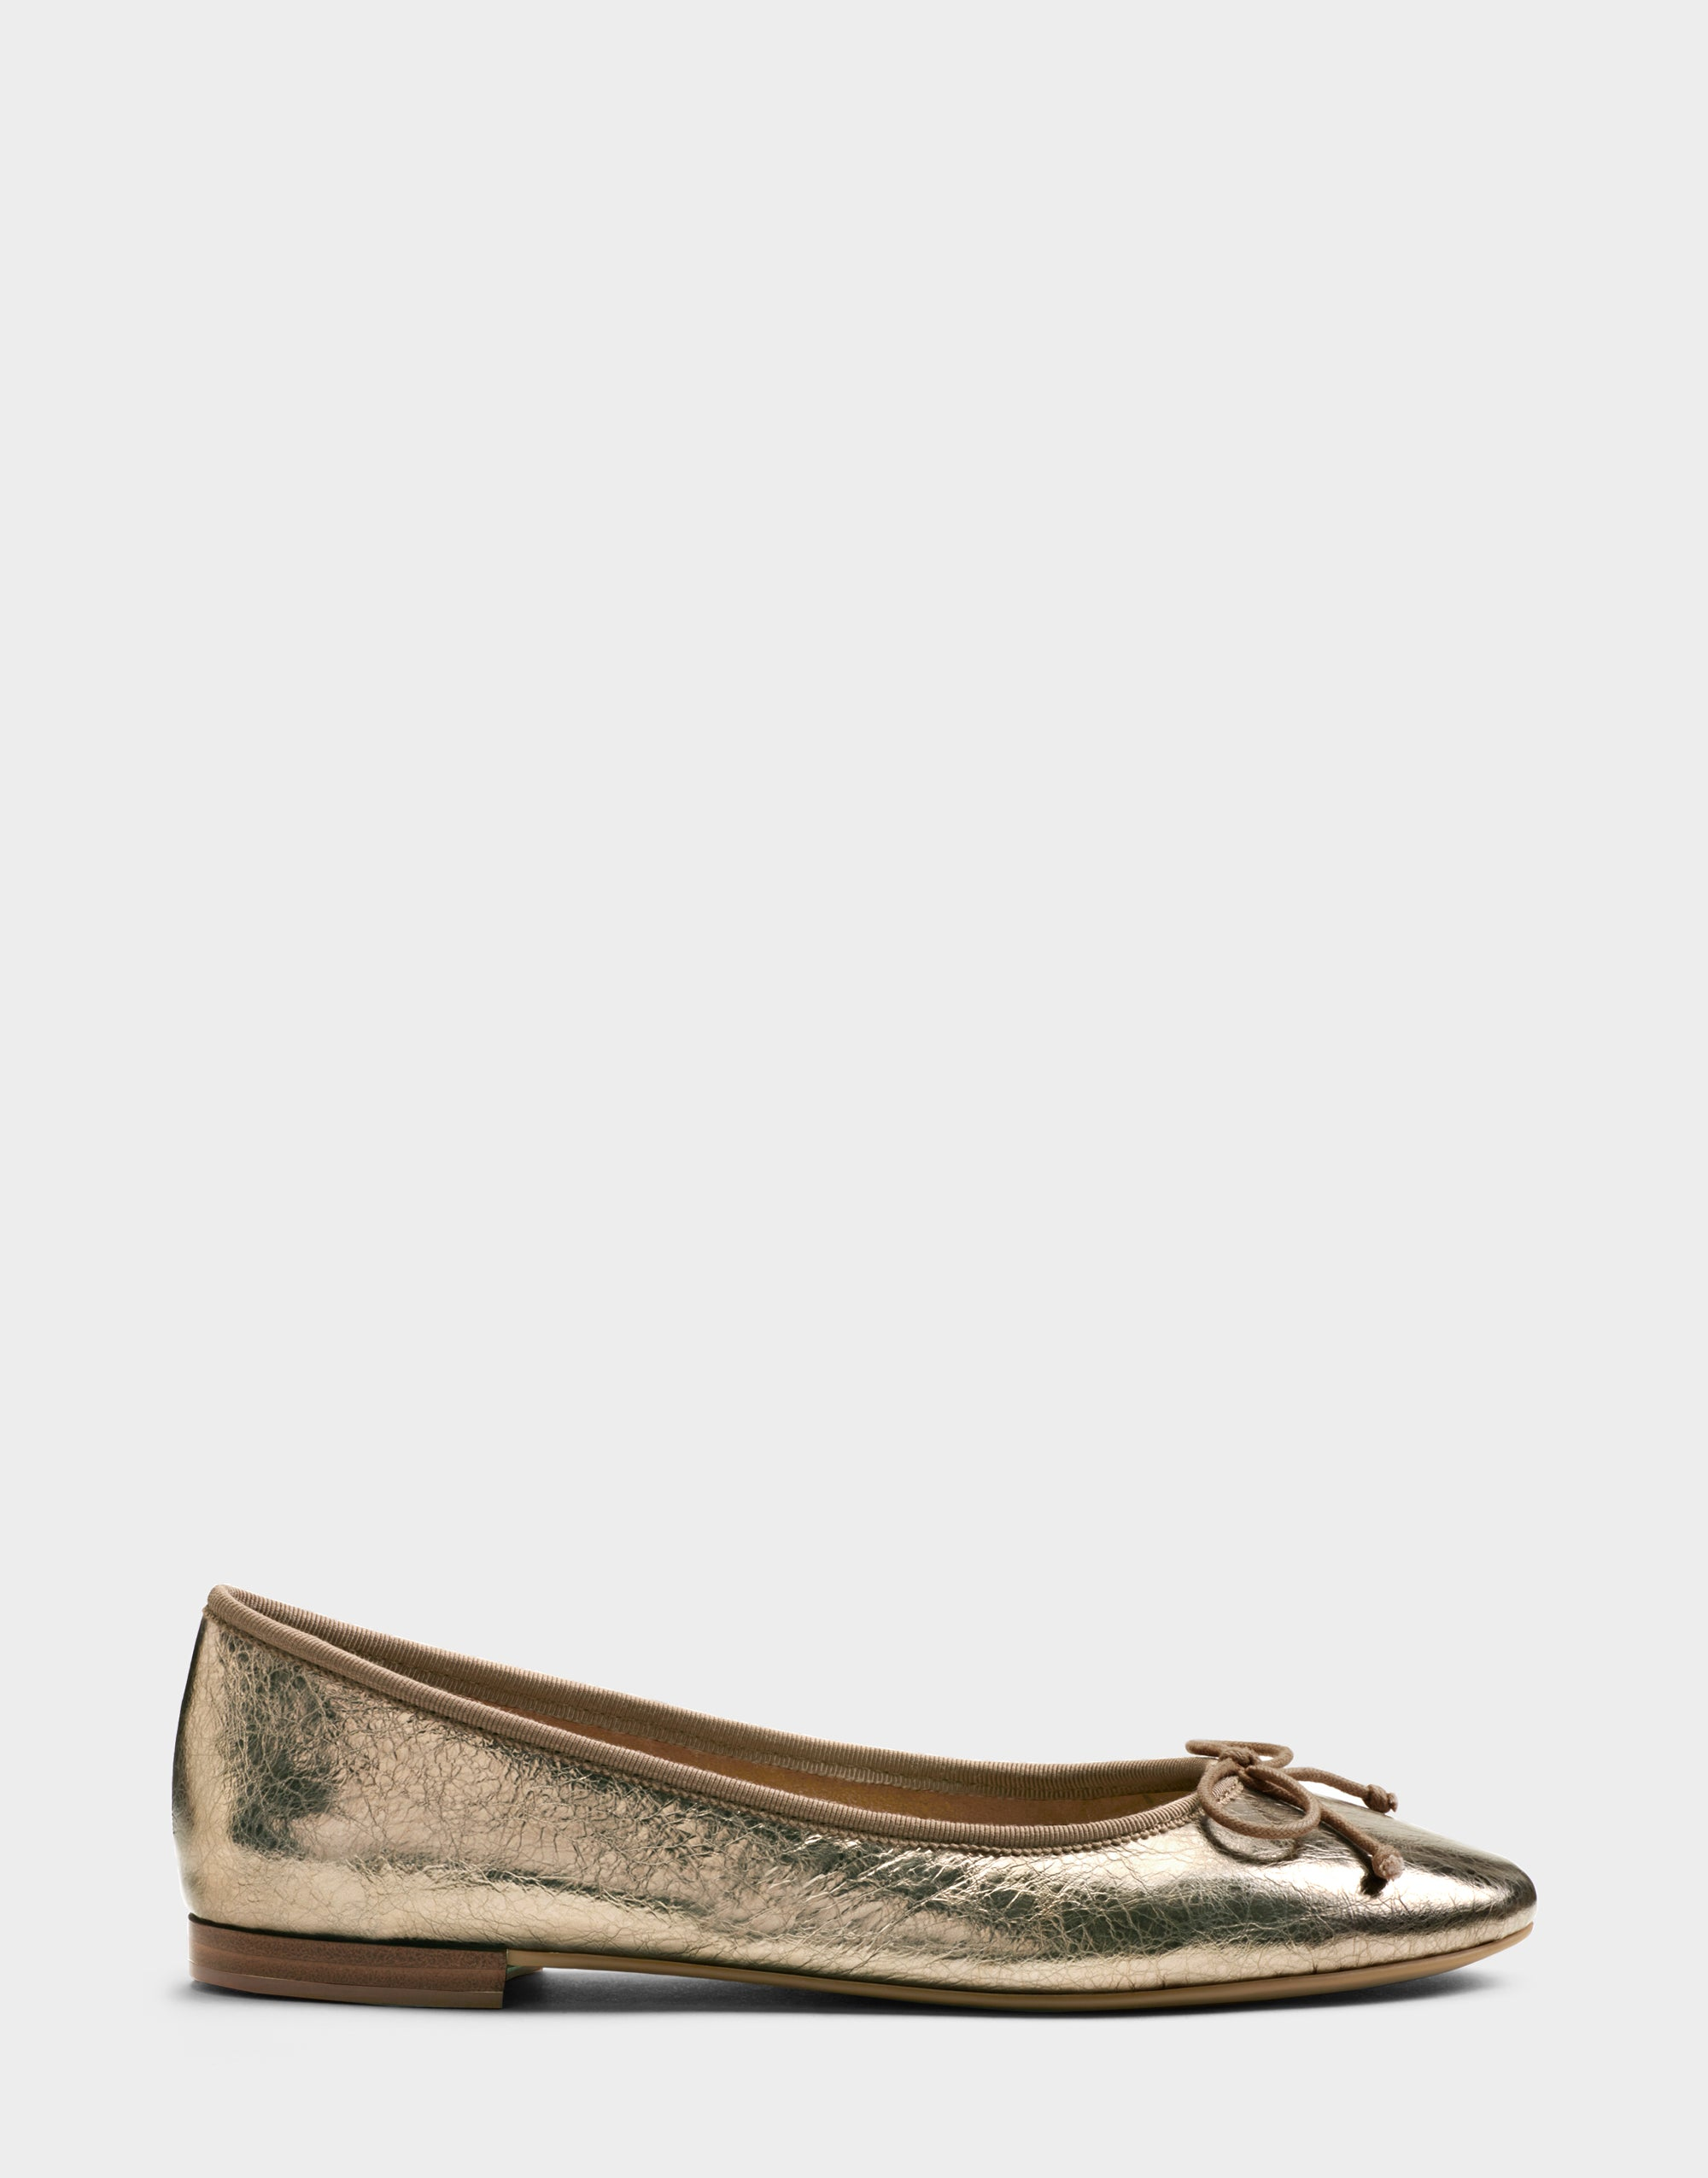 Retro Vintage Flats and Low Heel Shoes Aerosoles Homerun - Champagne Metallic Genuine Leather  12  Medium $89.00 AT vintagedancer.com